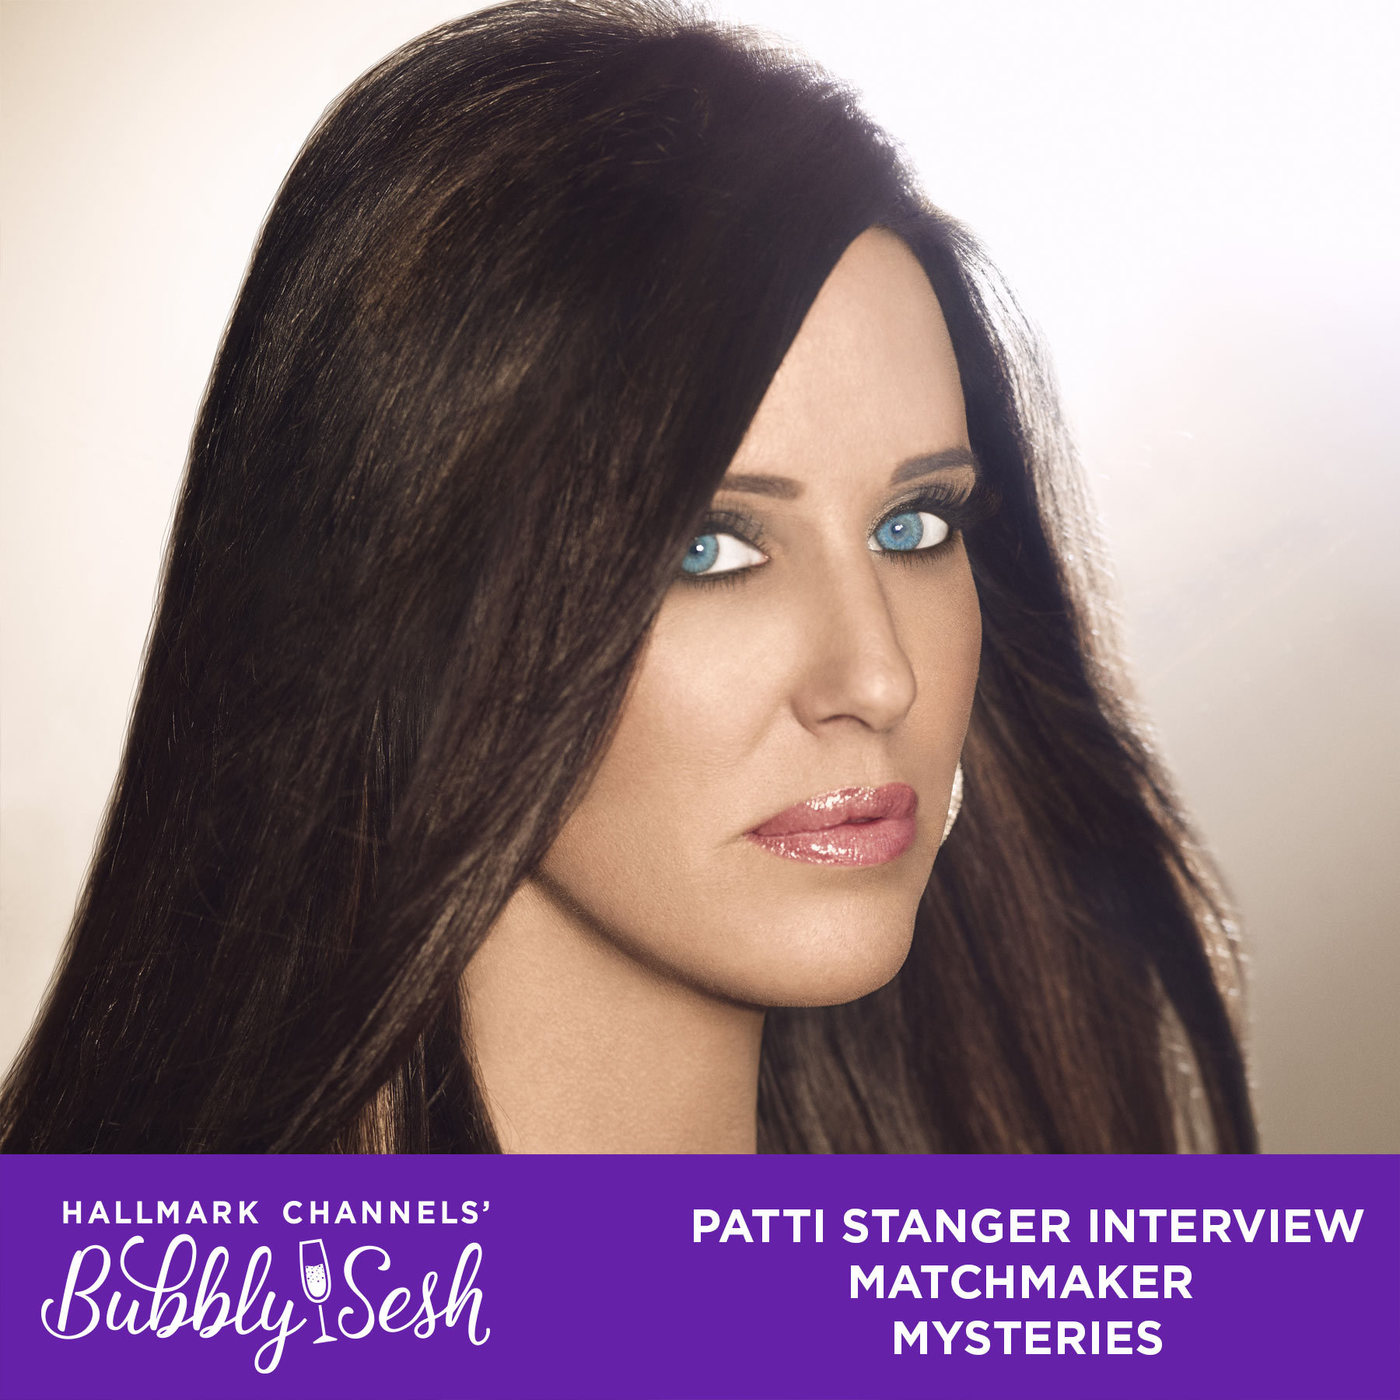 Patti Stanger Interview – Producer of Matchmaker Mysteries